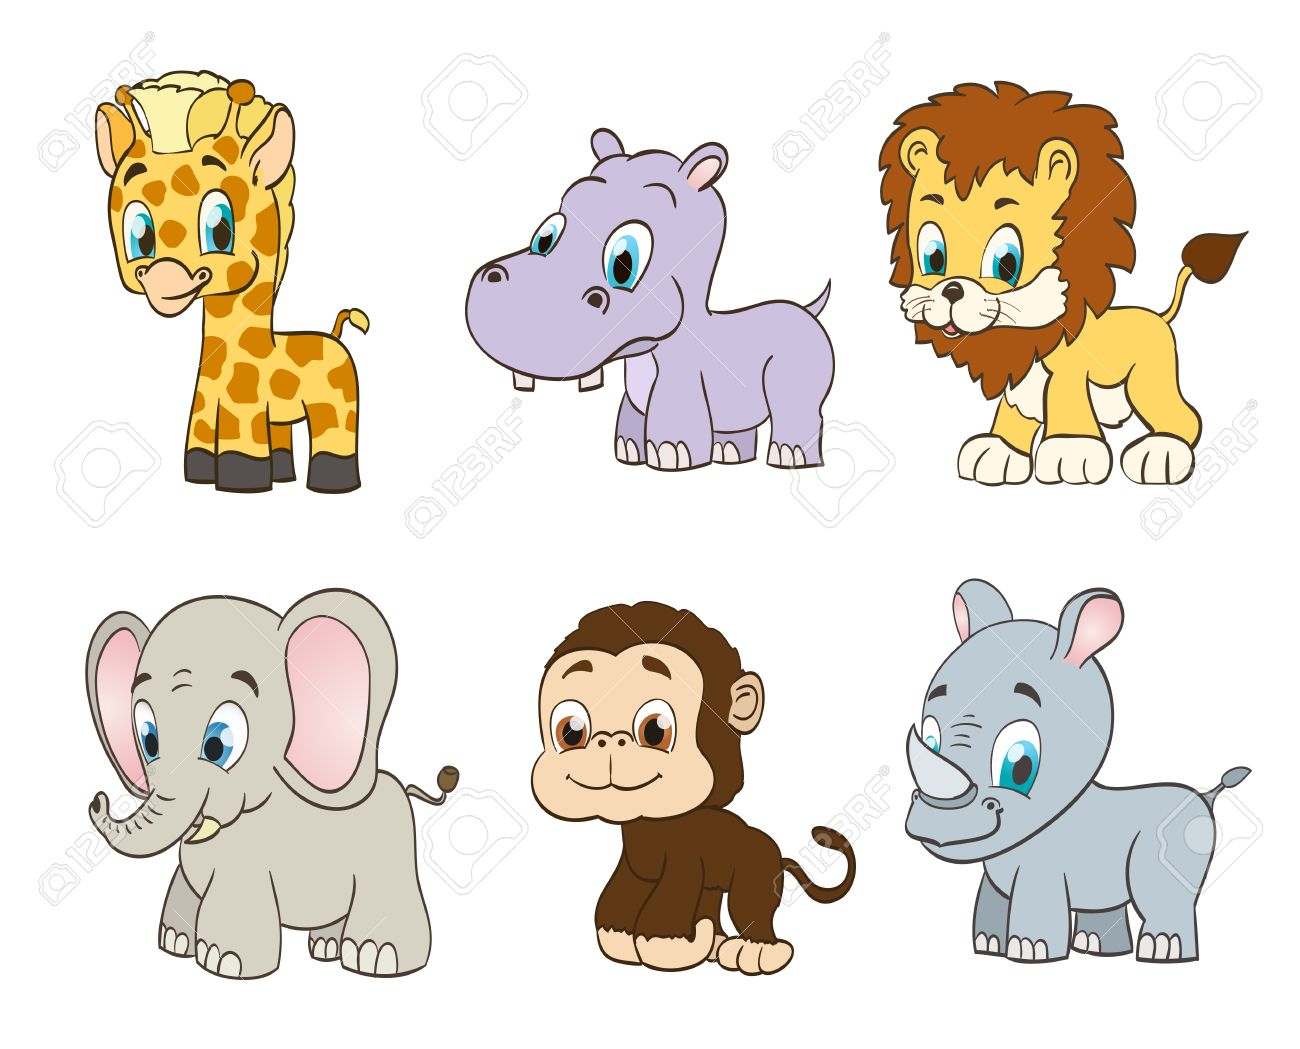 cartoon animals images  Set Of Vector Jungle Cartoon Animals. Vector Royalty Free Cliparts ...